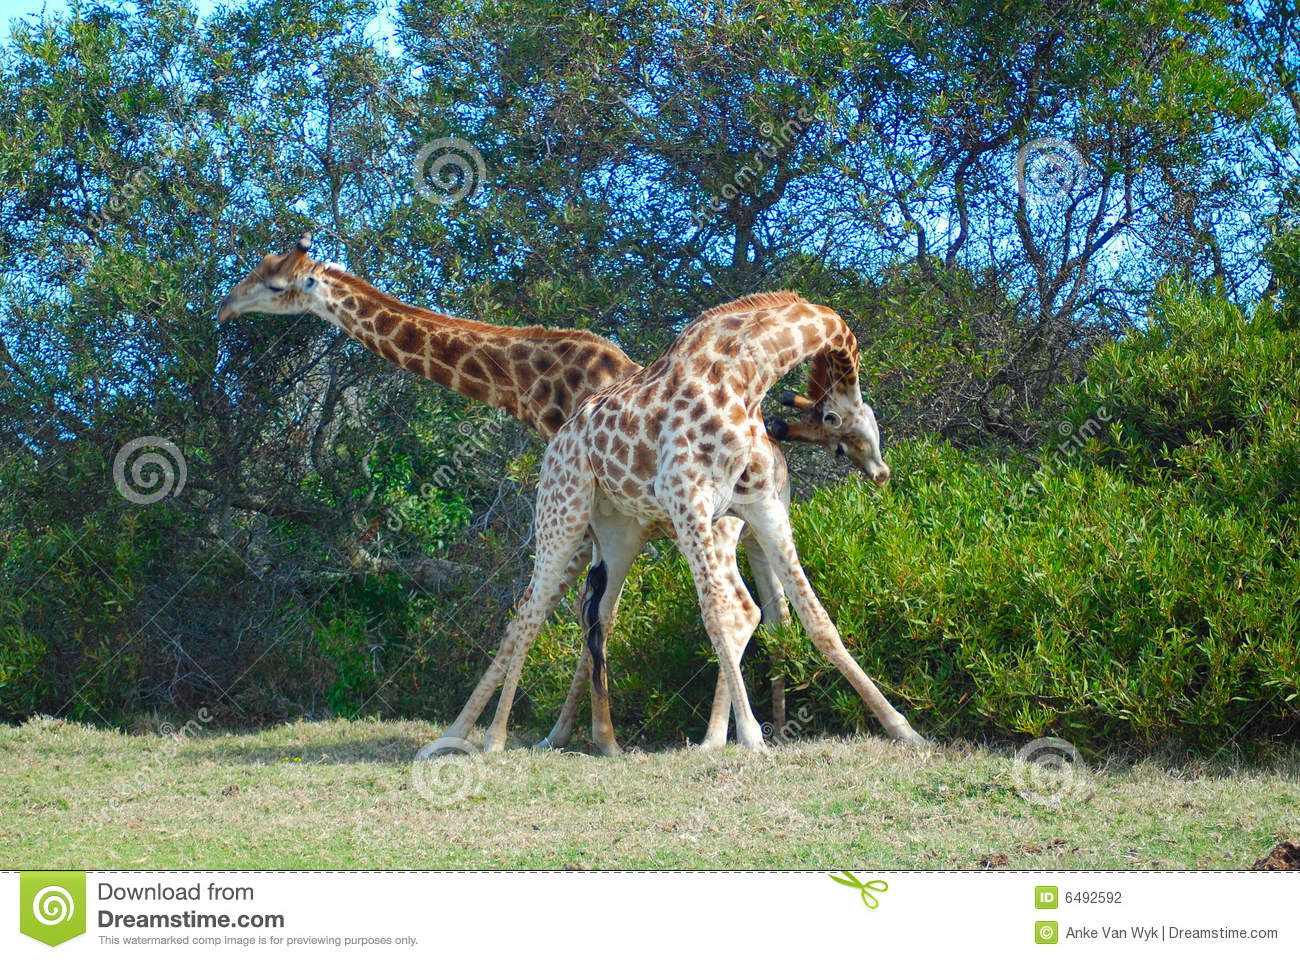 Two adult male giraffes fighting in a game park in South Africa.